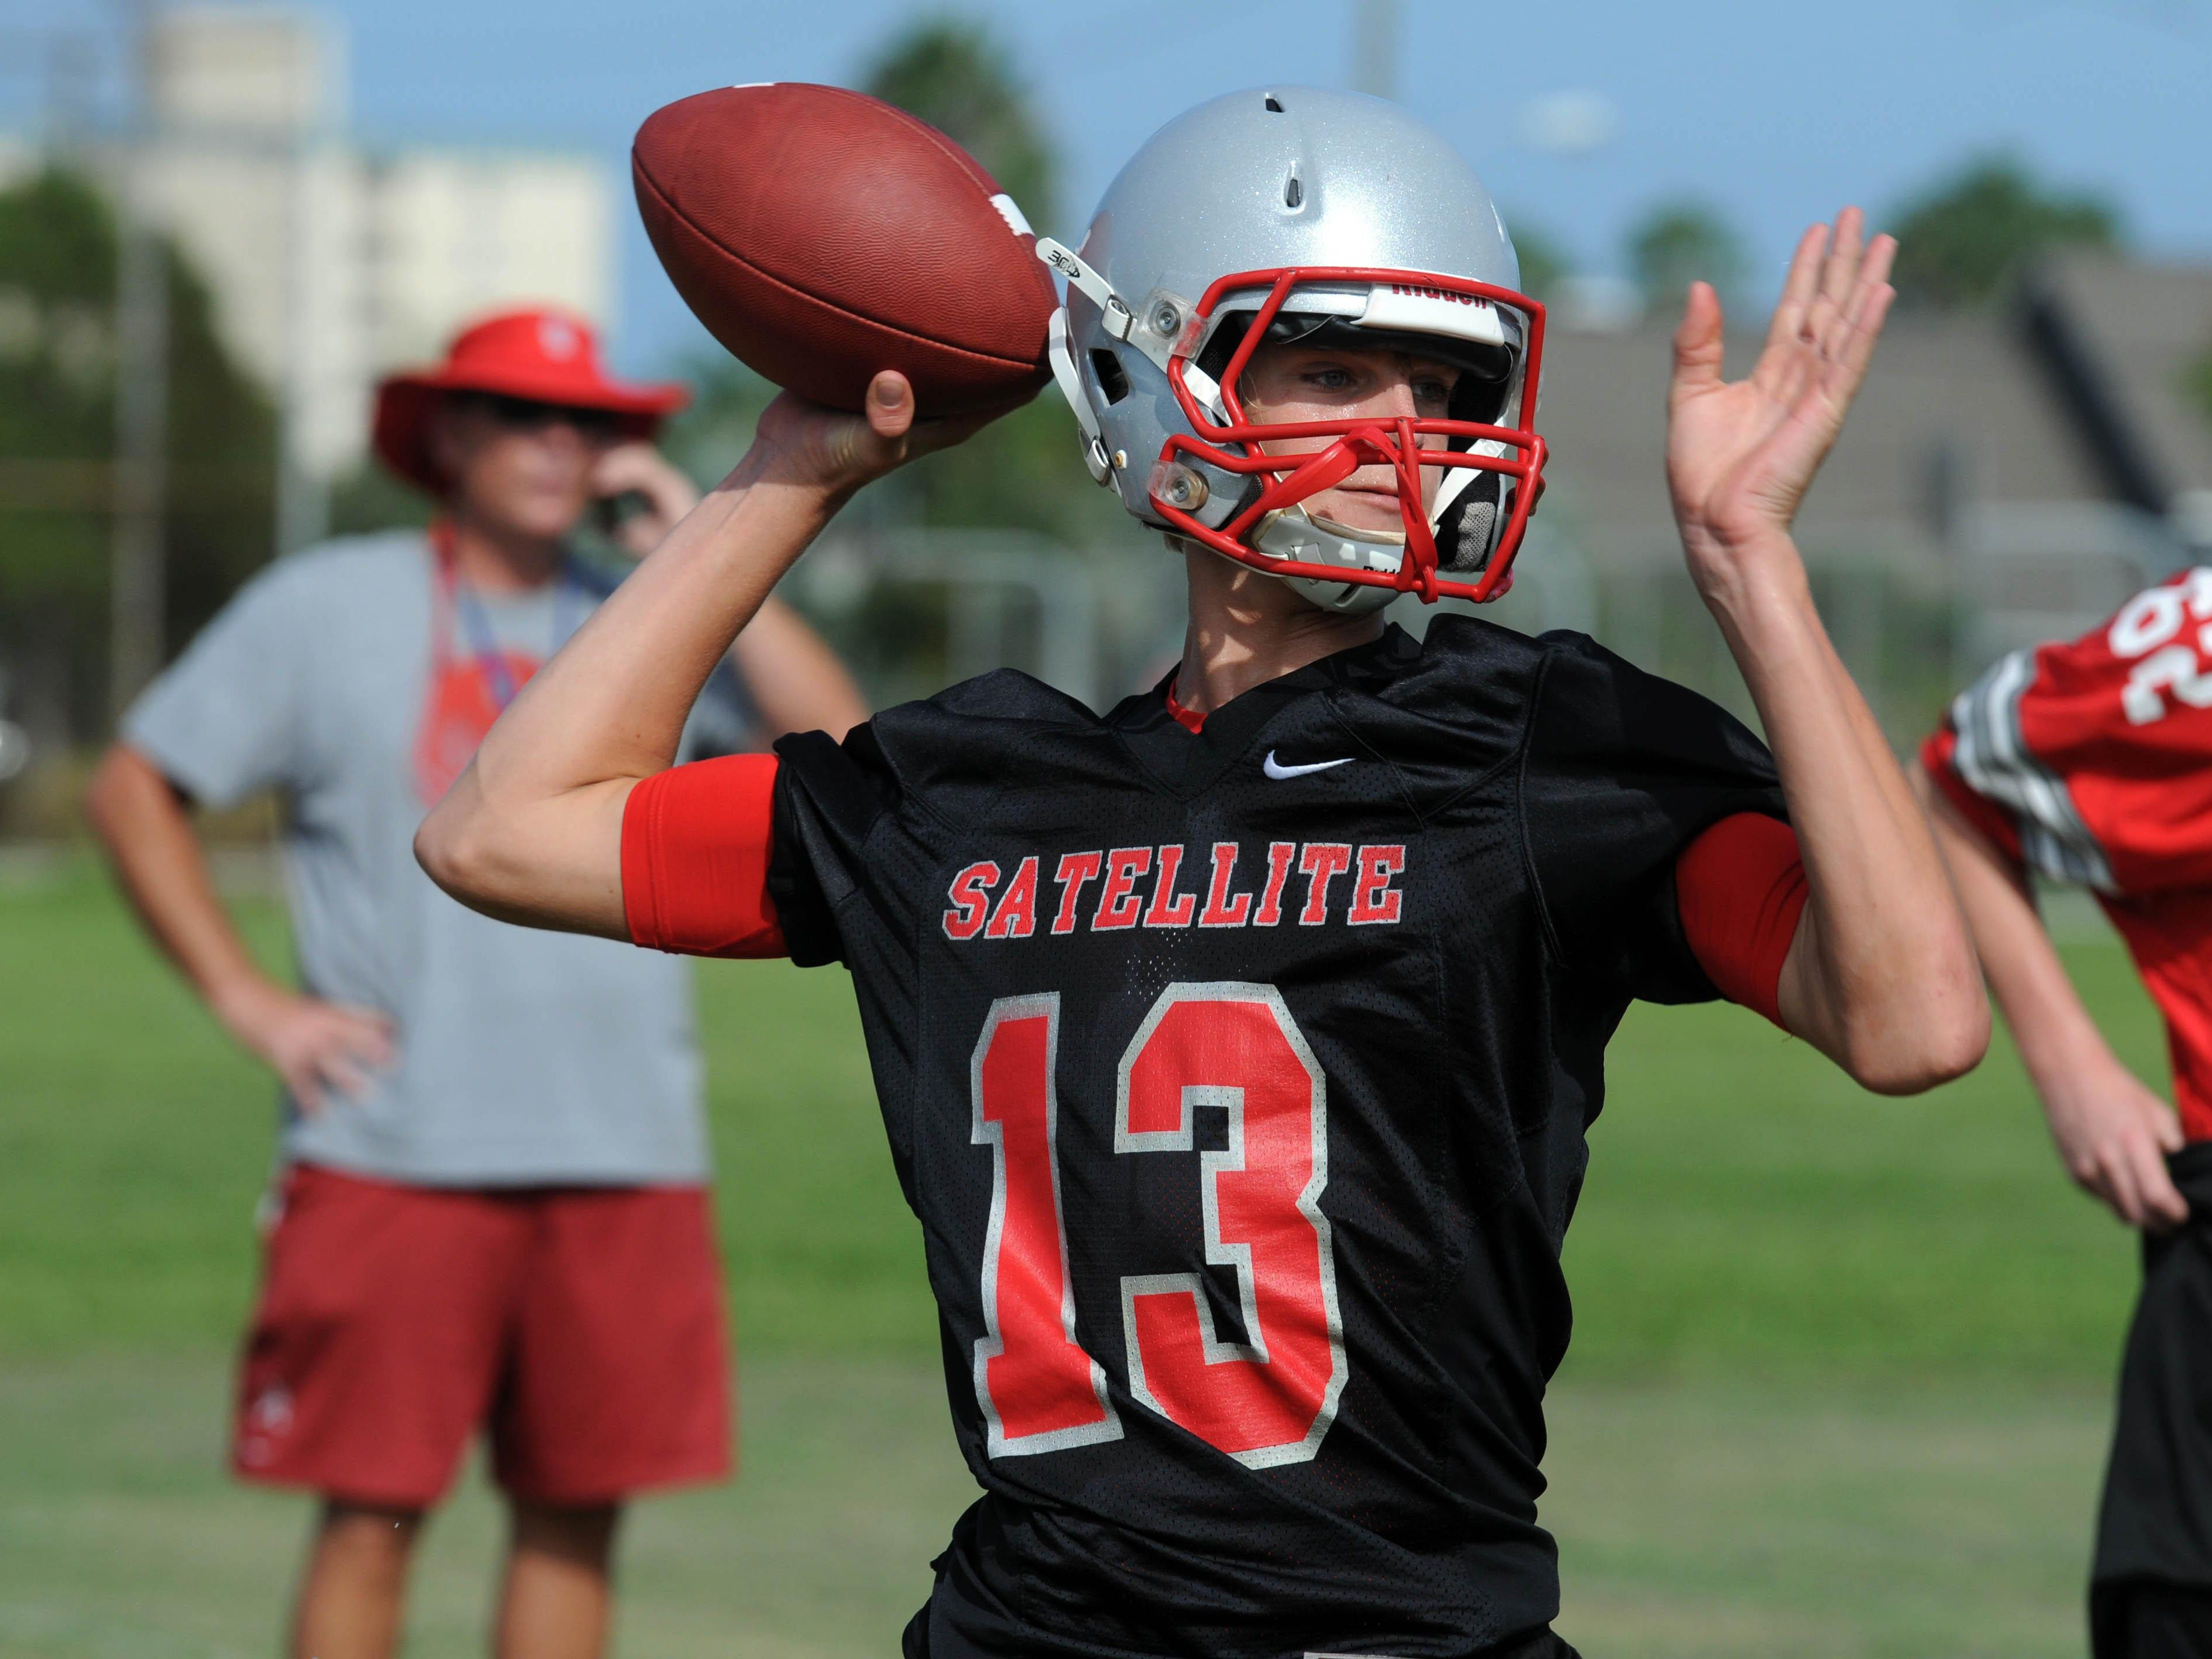 Satellite High's Noah Mumme scored with 9 seconds remaining to give the Scorpions a 9-7 victory in its preseason game against St. Cloud.